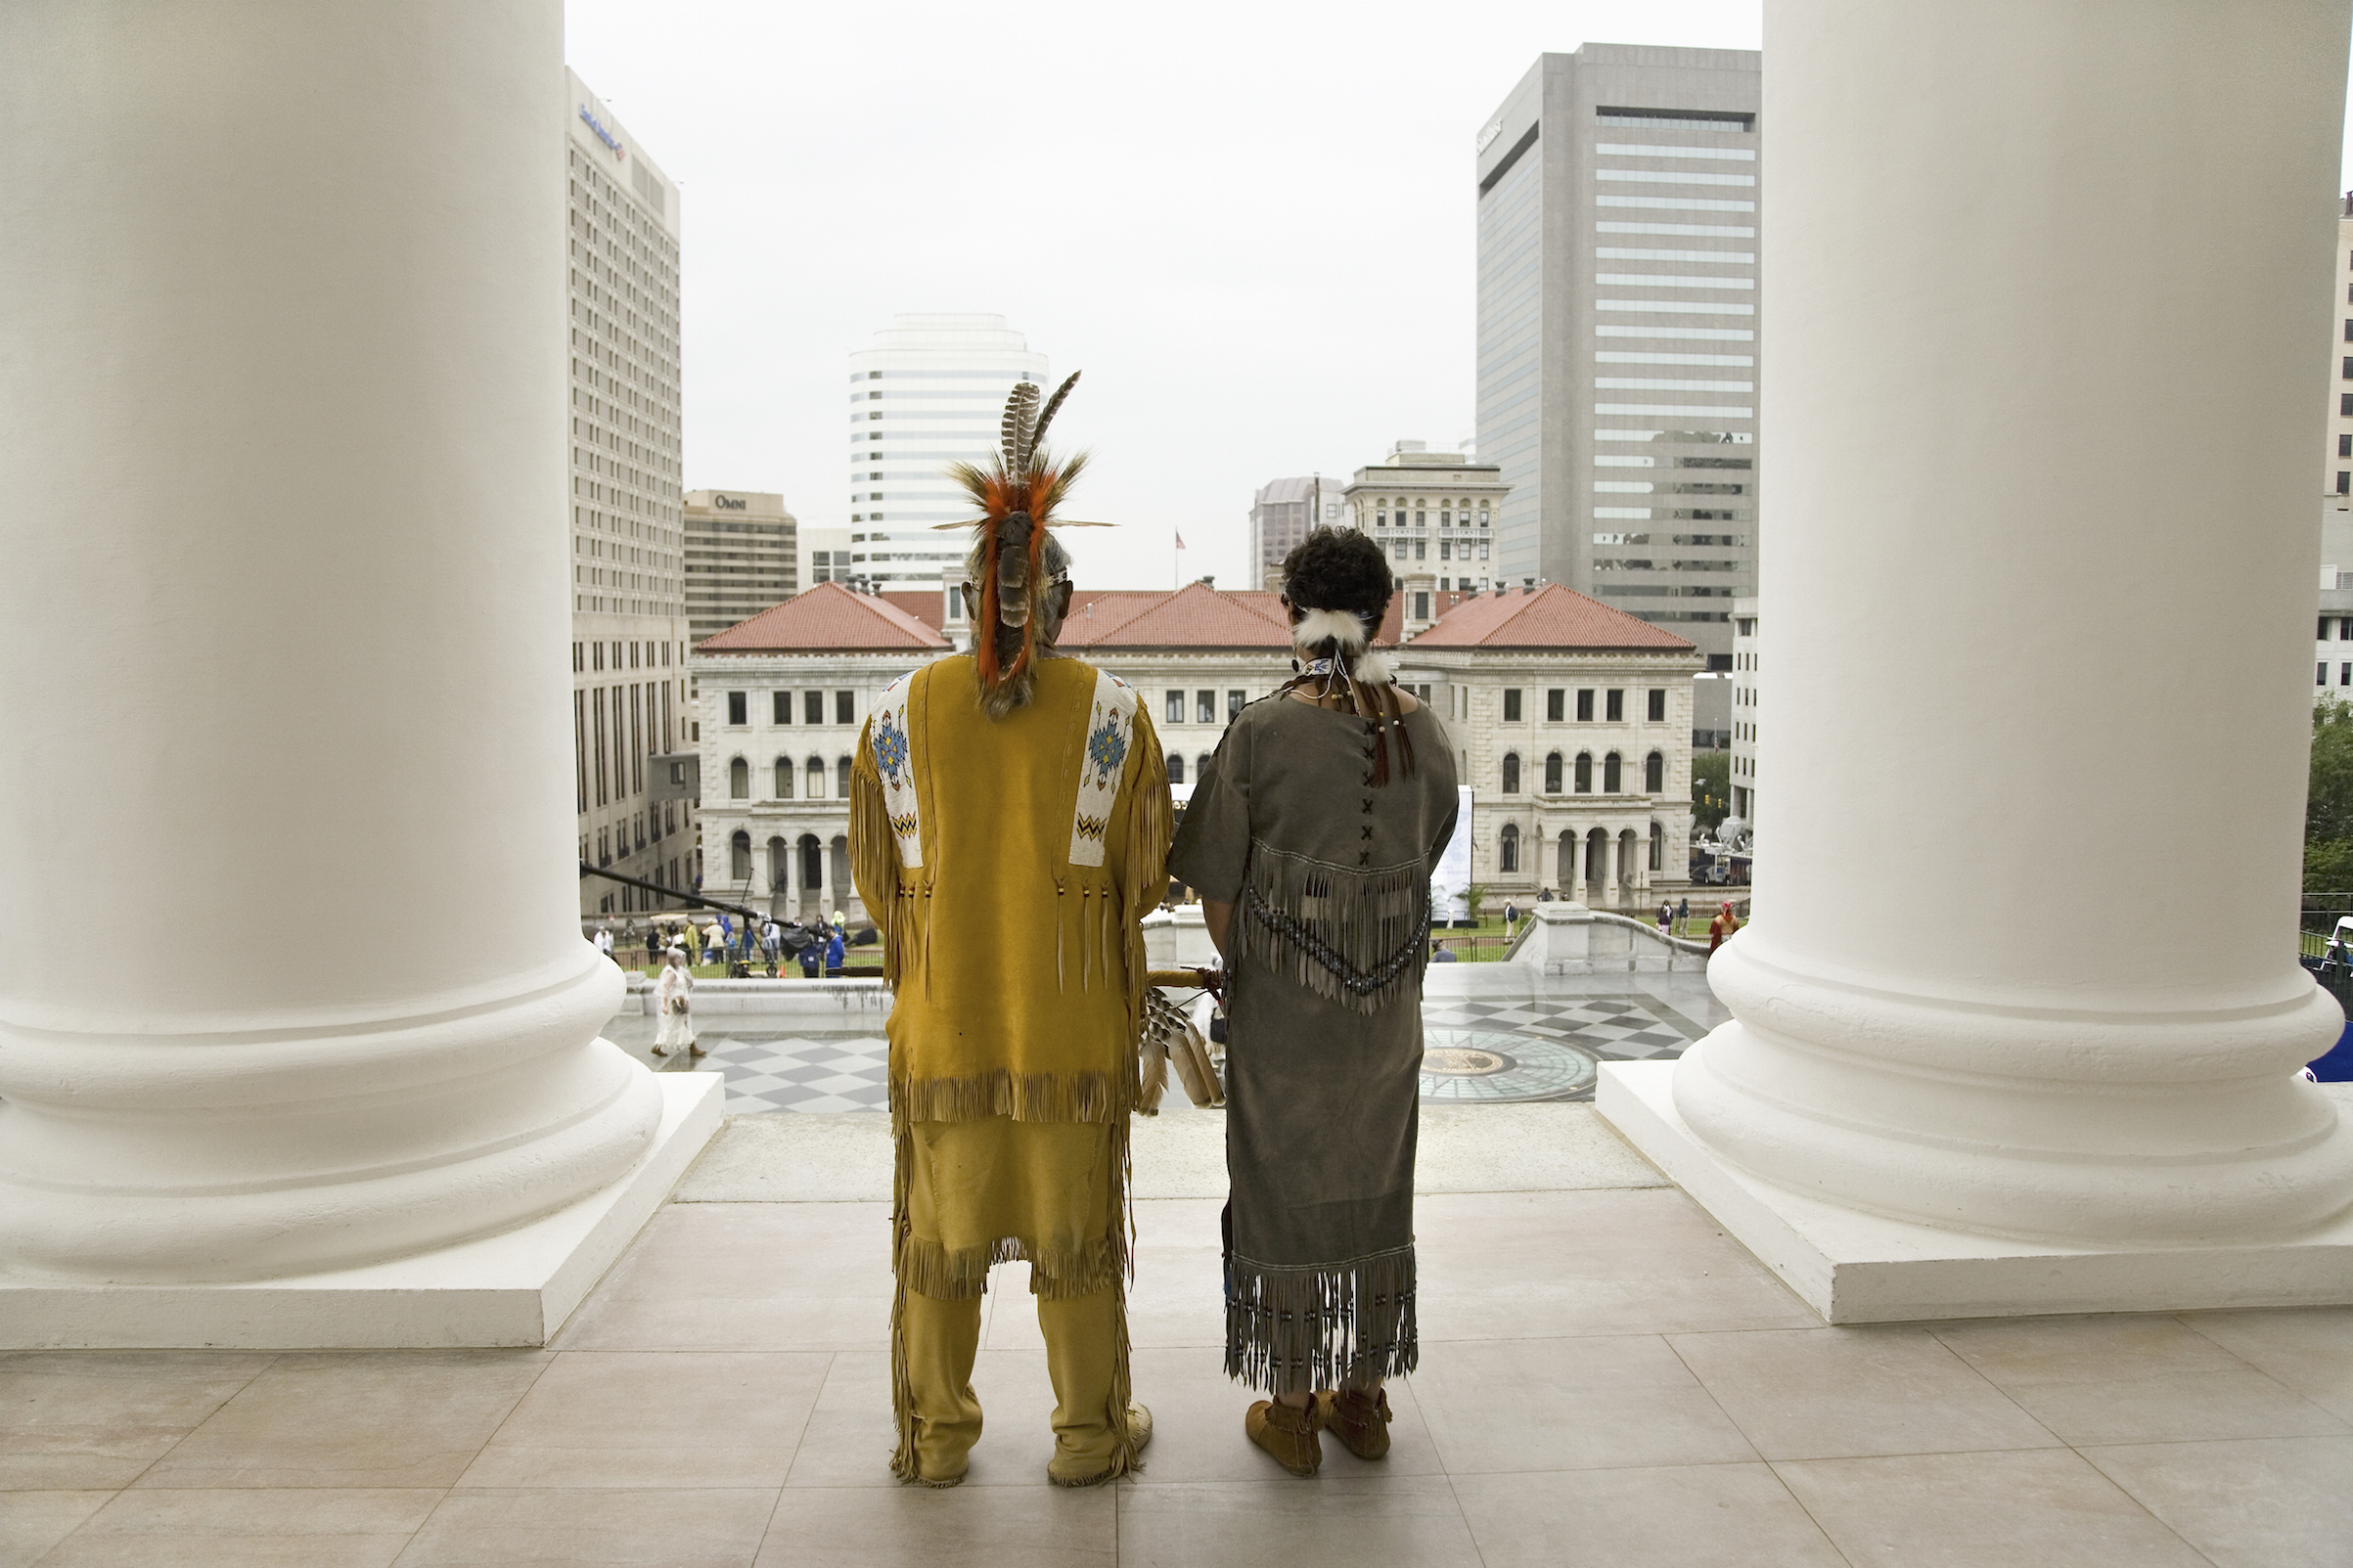 Two Powhatan Tribal members looking over Richmond, Va., from the State Capitol during ceremonies for the 400th Anniversary of the Jamestown Settlement on May 3, 2007.